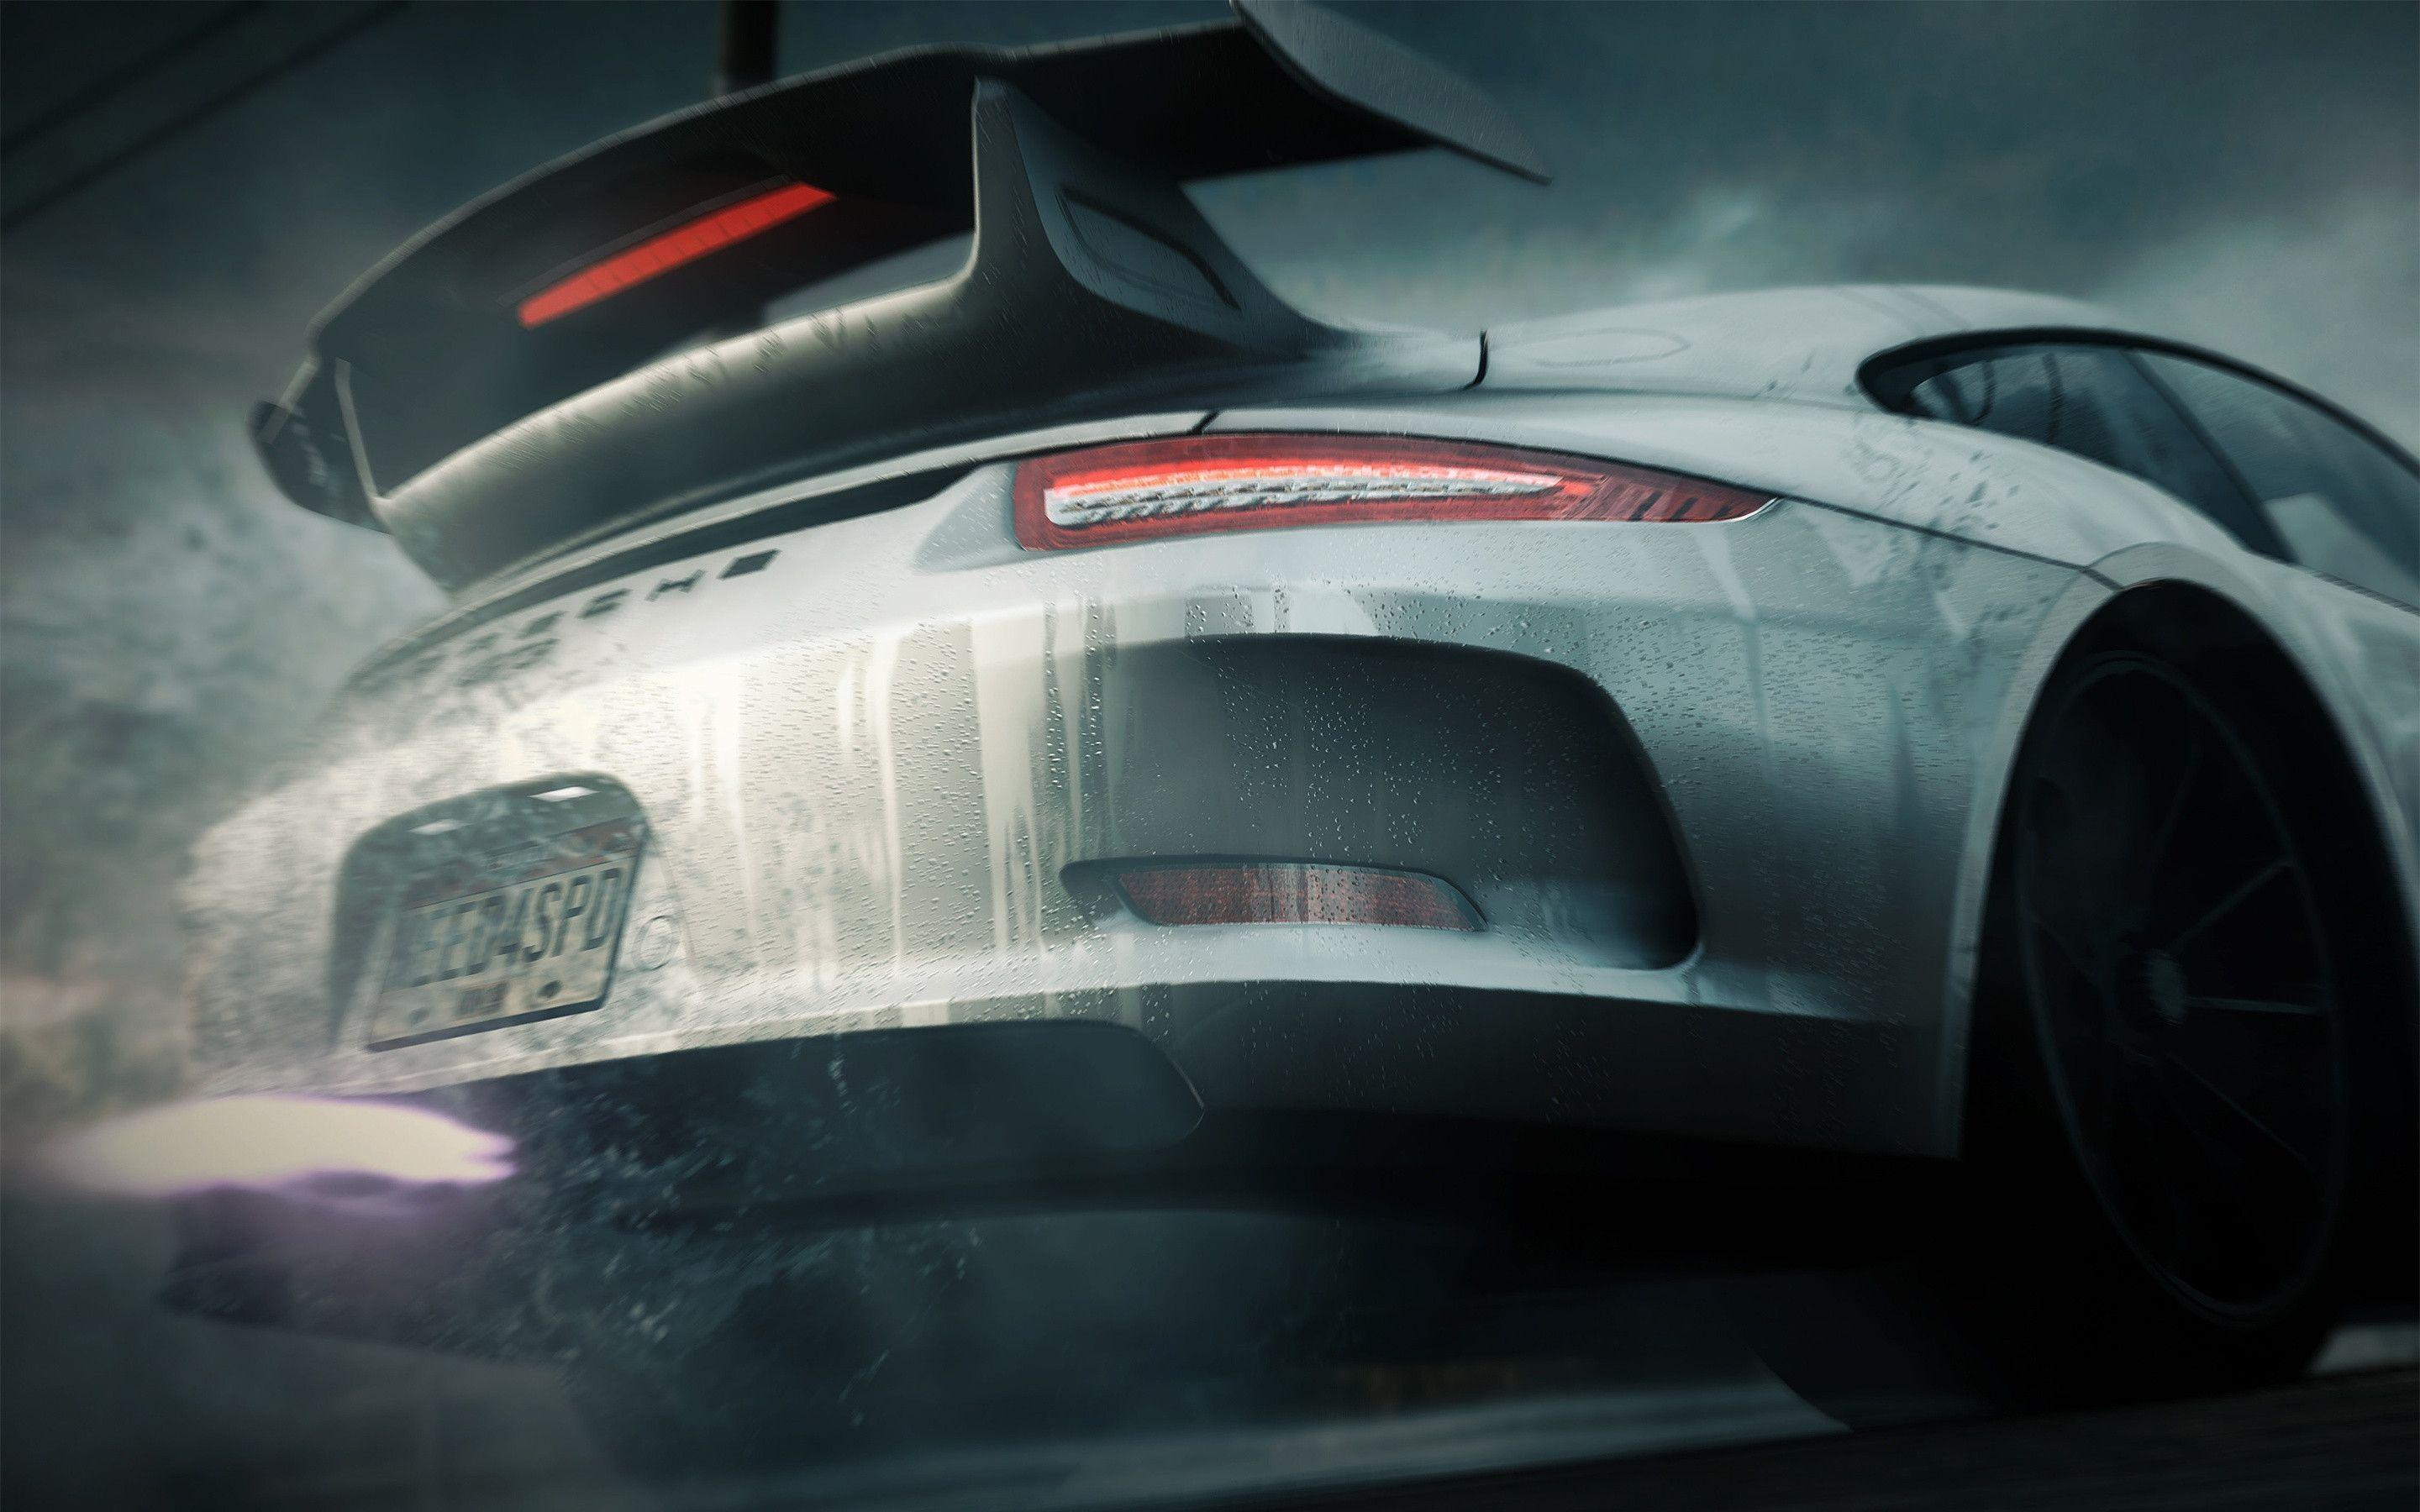 2880x1800 Porsche need for speed Wallpapers